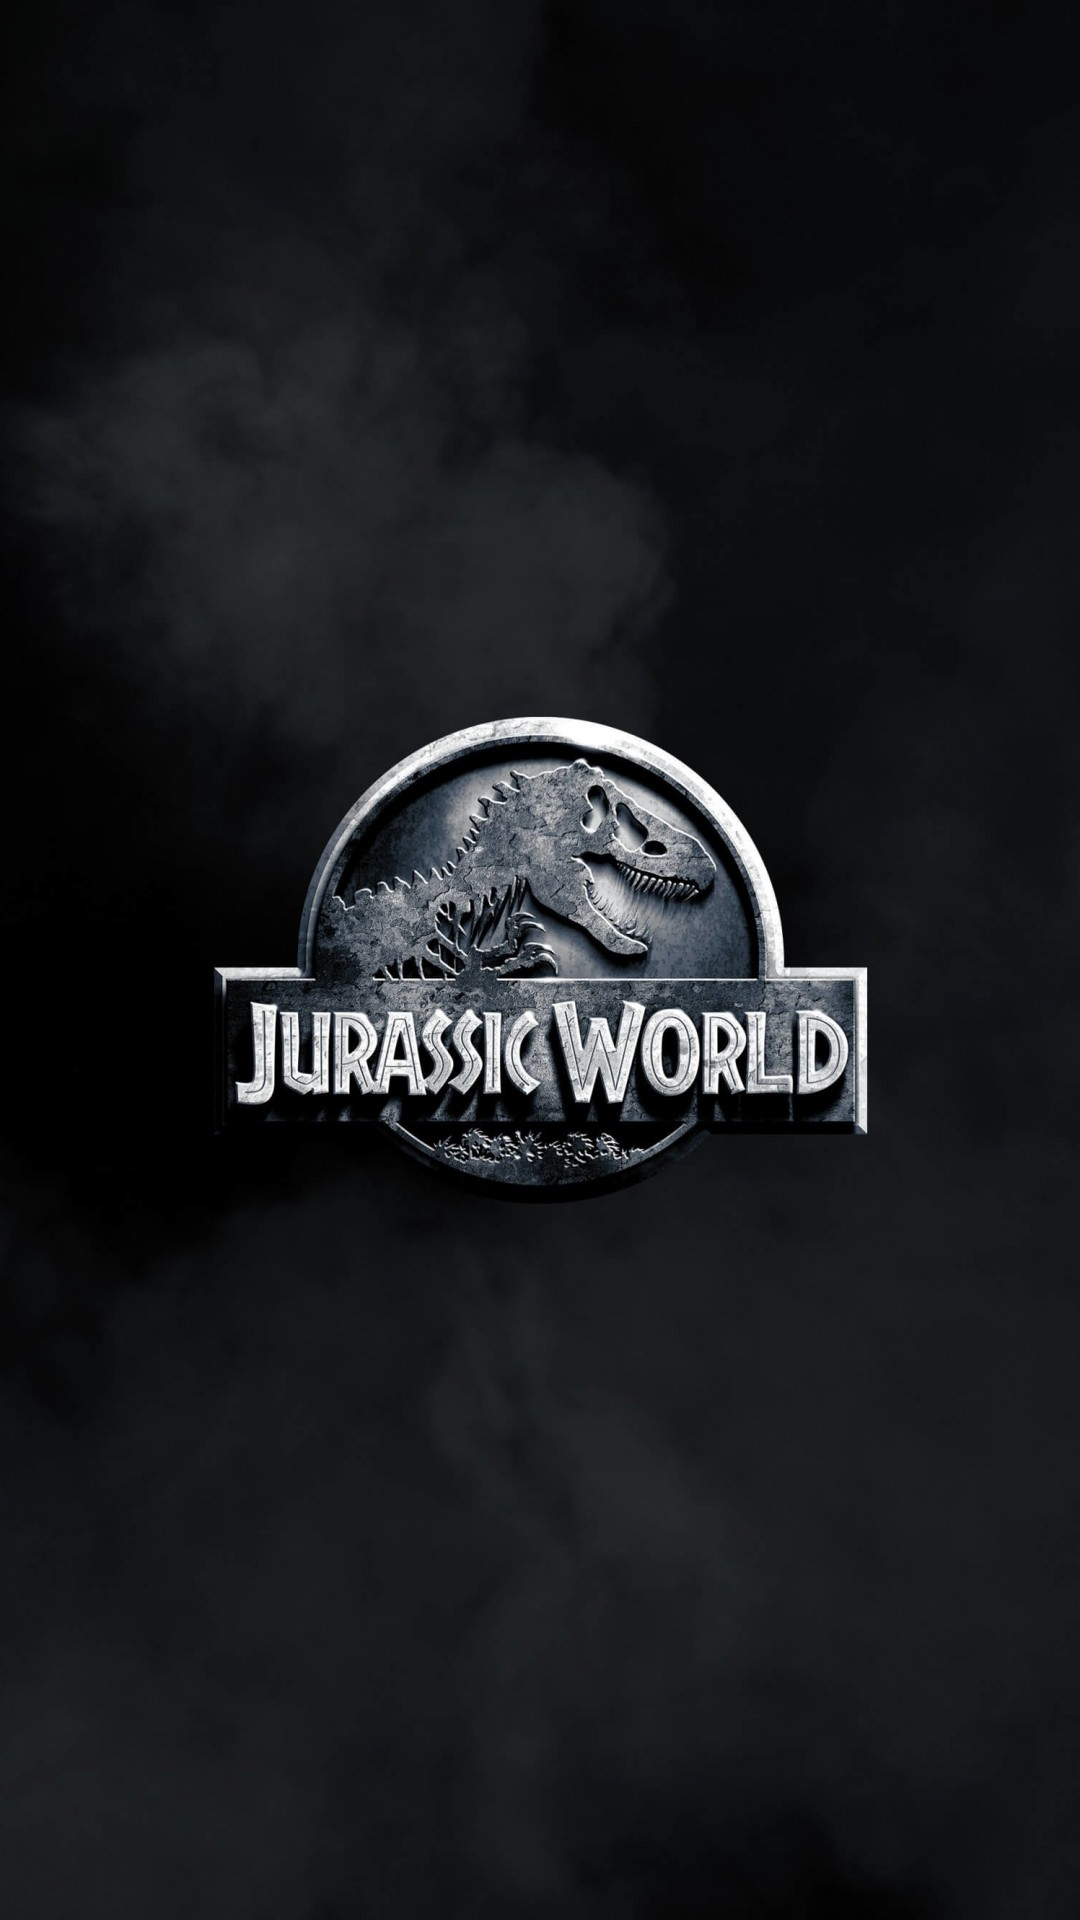 Jurassic World Wallpaper for SONY Xperia Z2